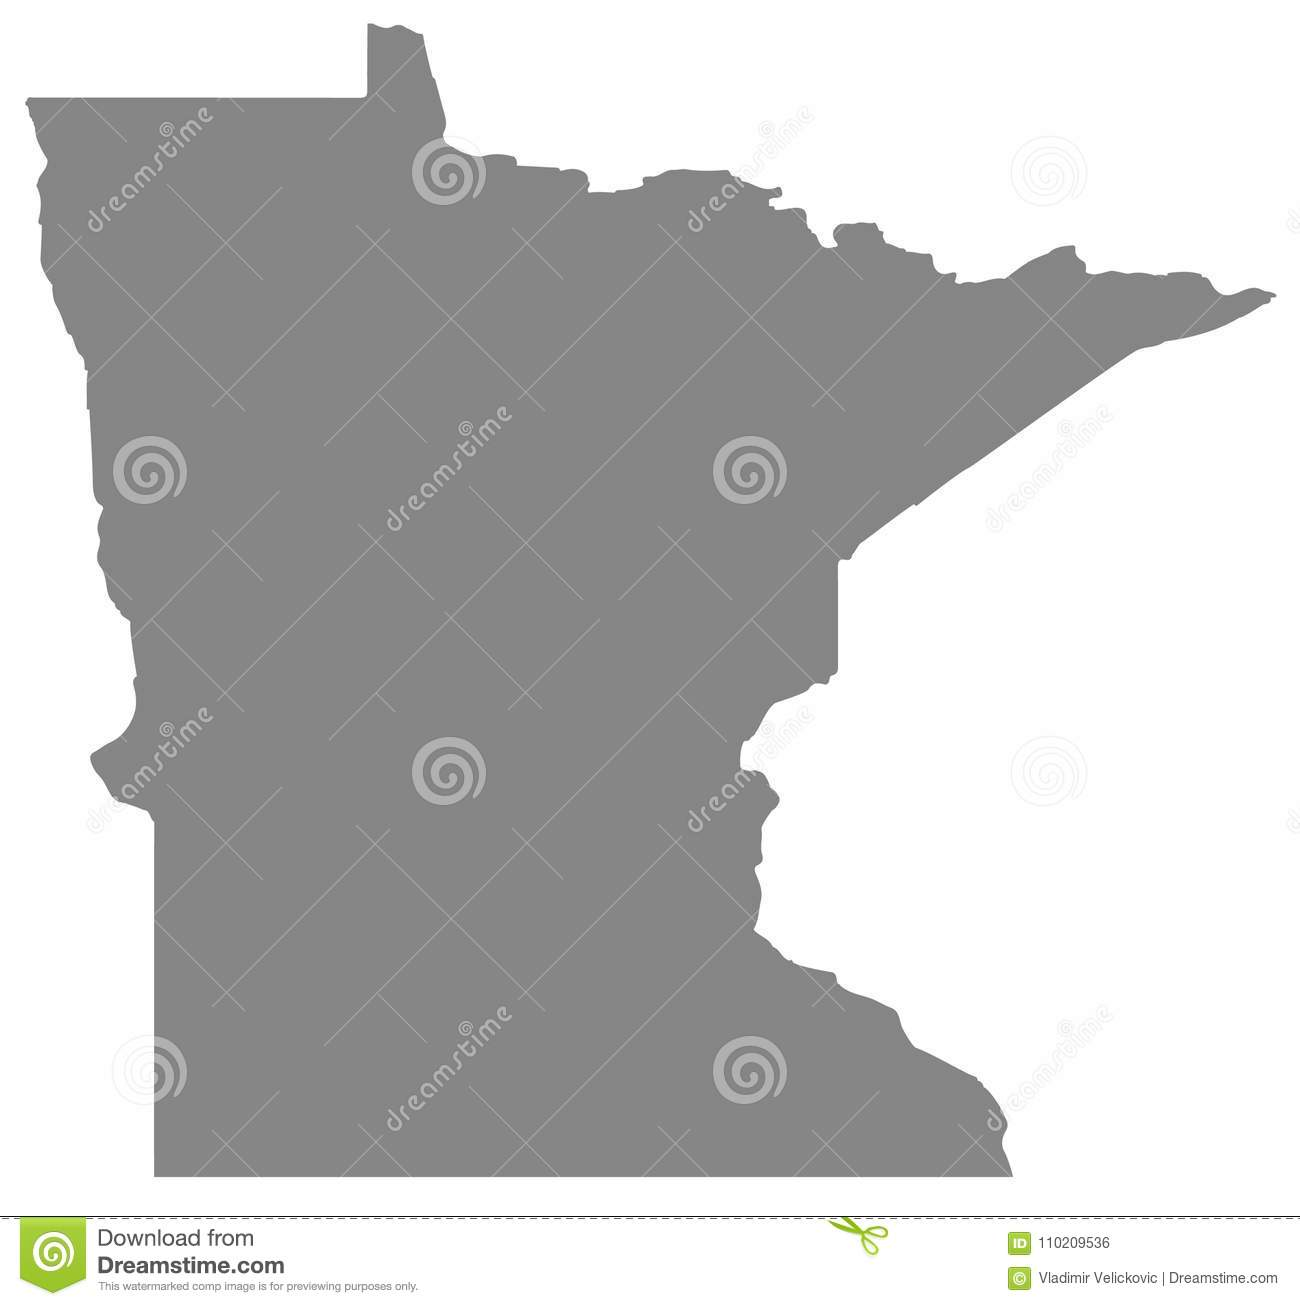 Minnesota Map State In The Midwestern And Northern Regions Of The